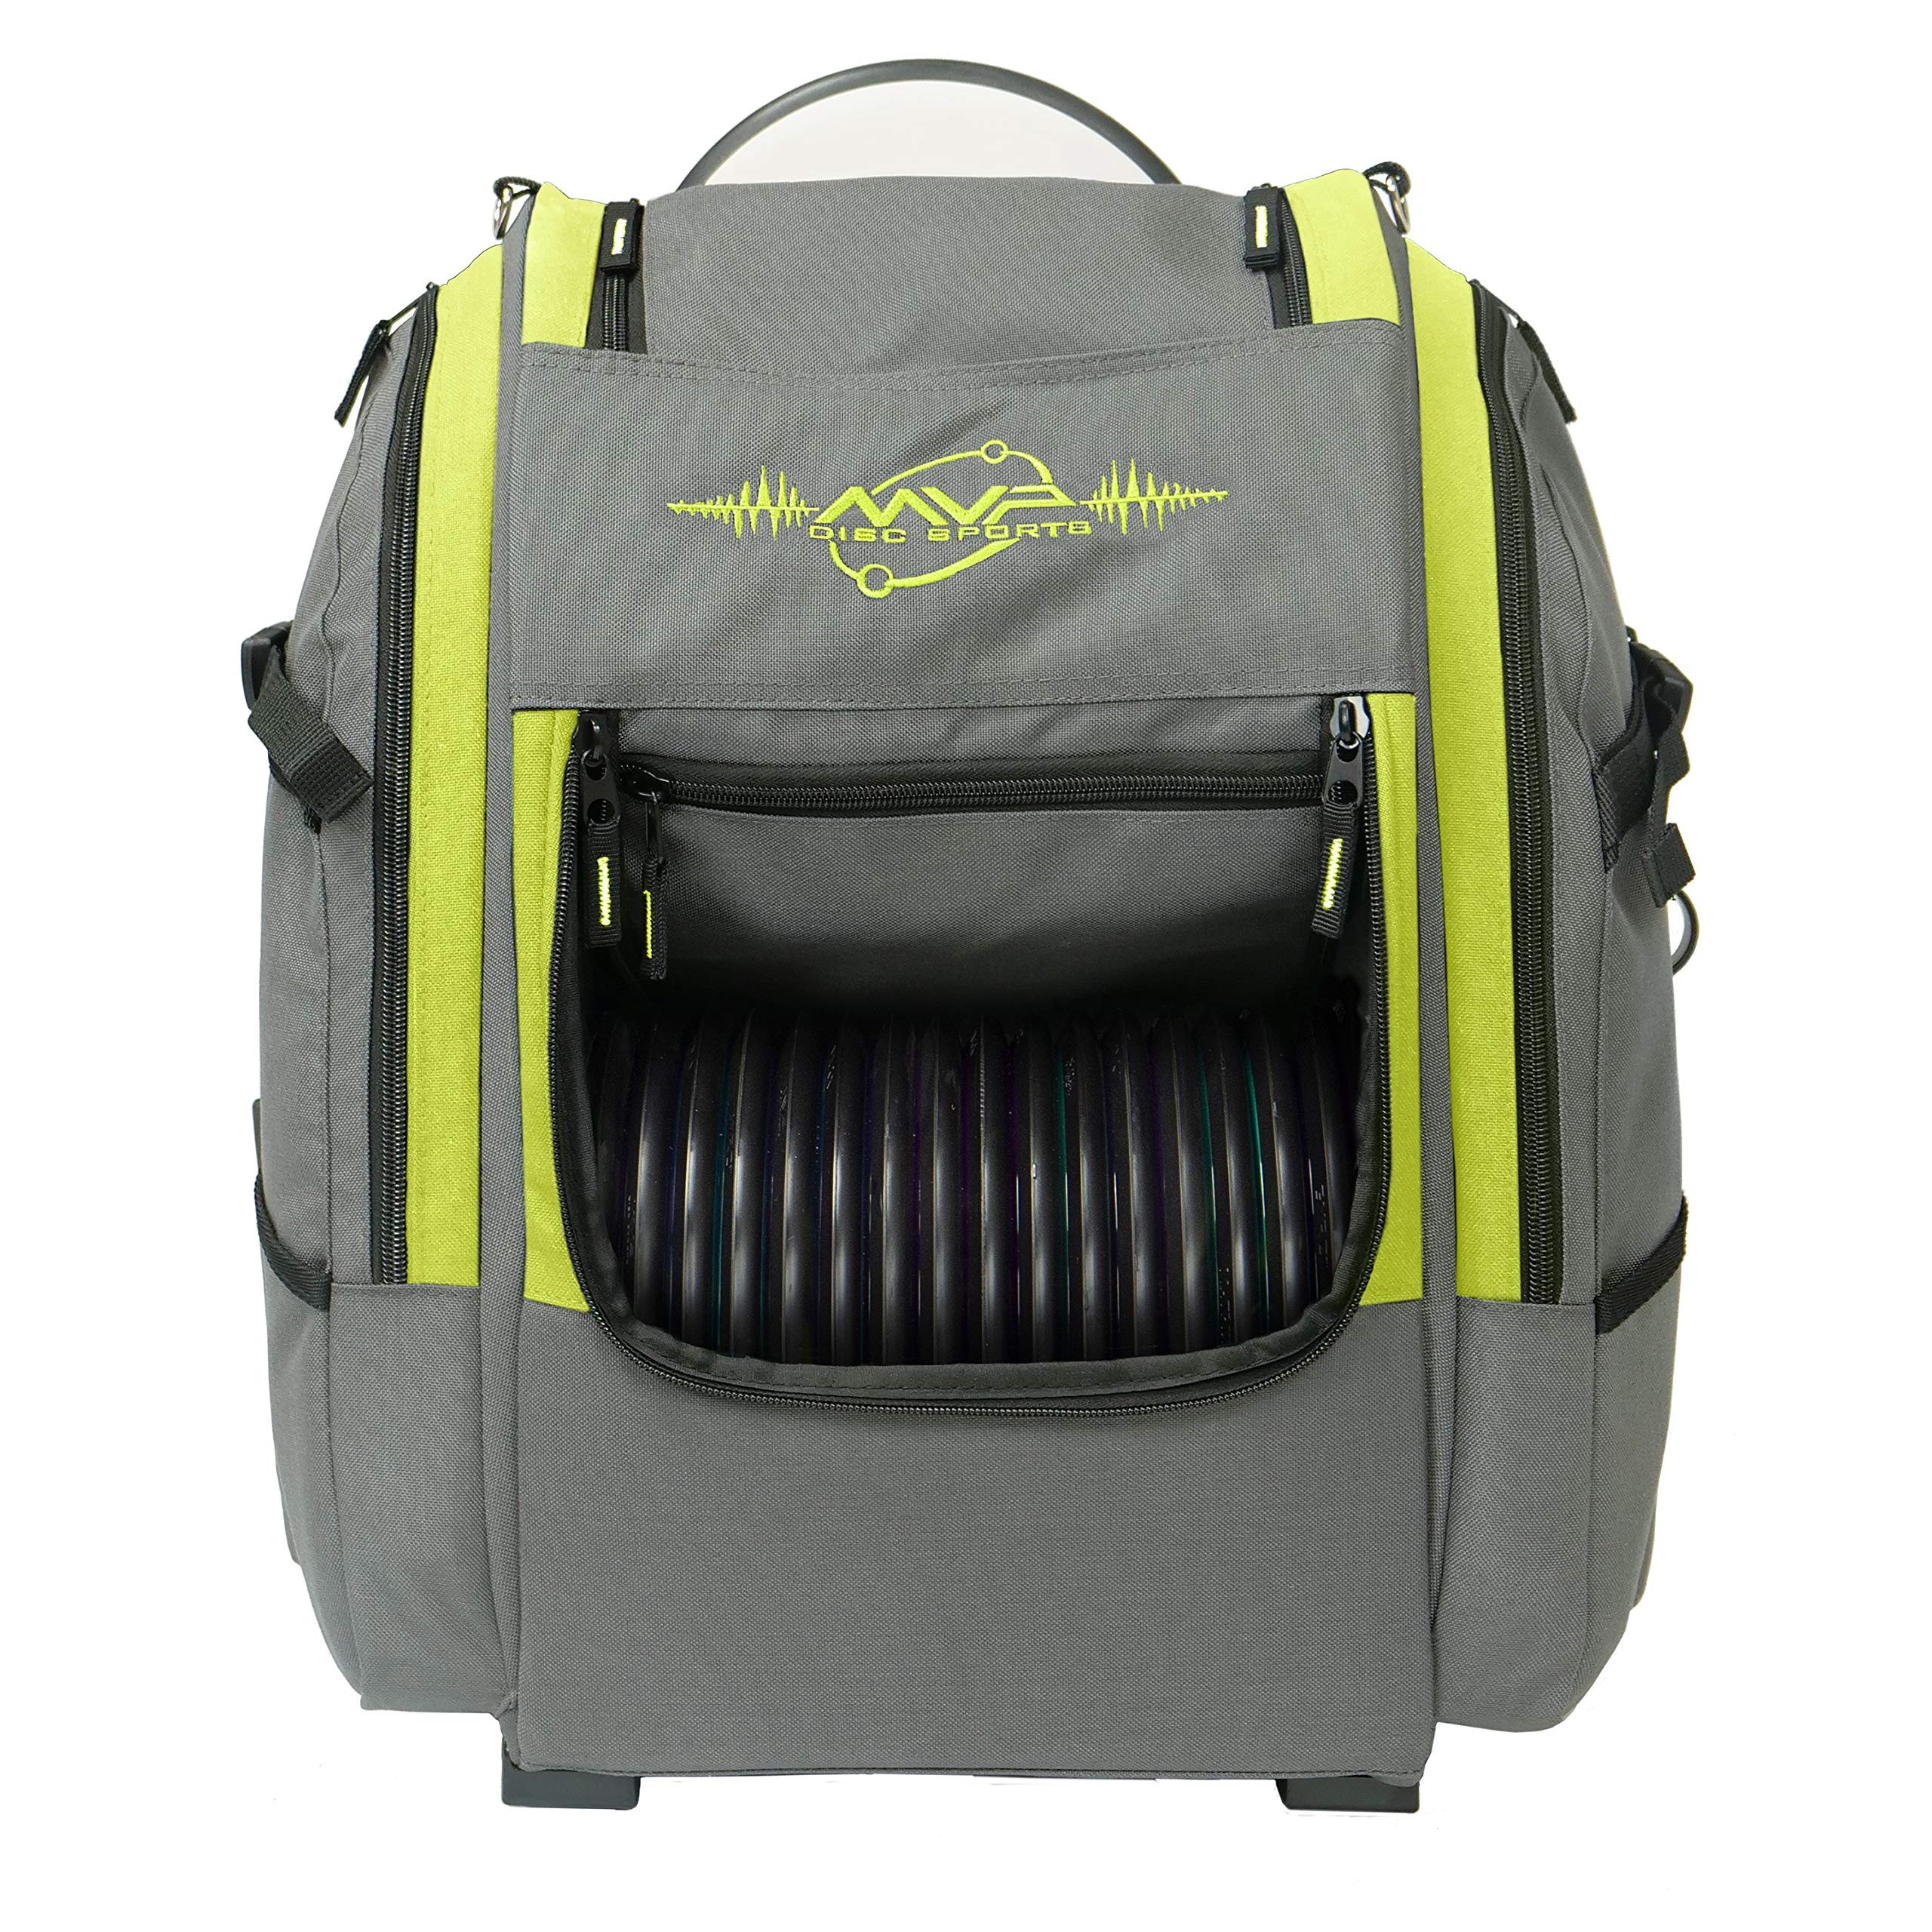 MVP Disc Sports Voyager Backpack Disc Golf Bag (Version 2) Gray/Lime by MVP Disc Sports